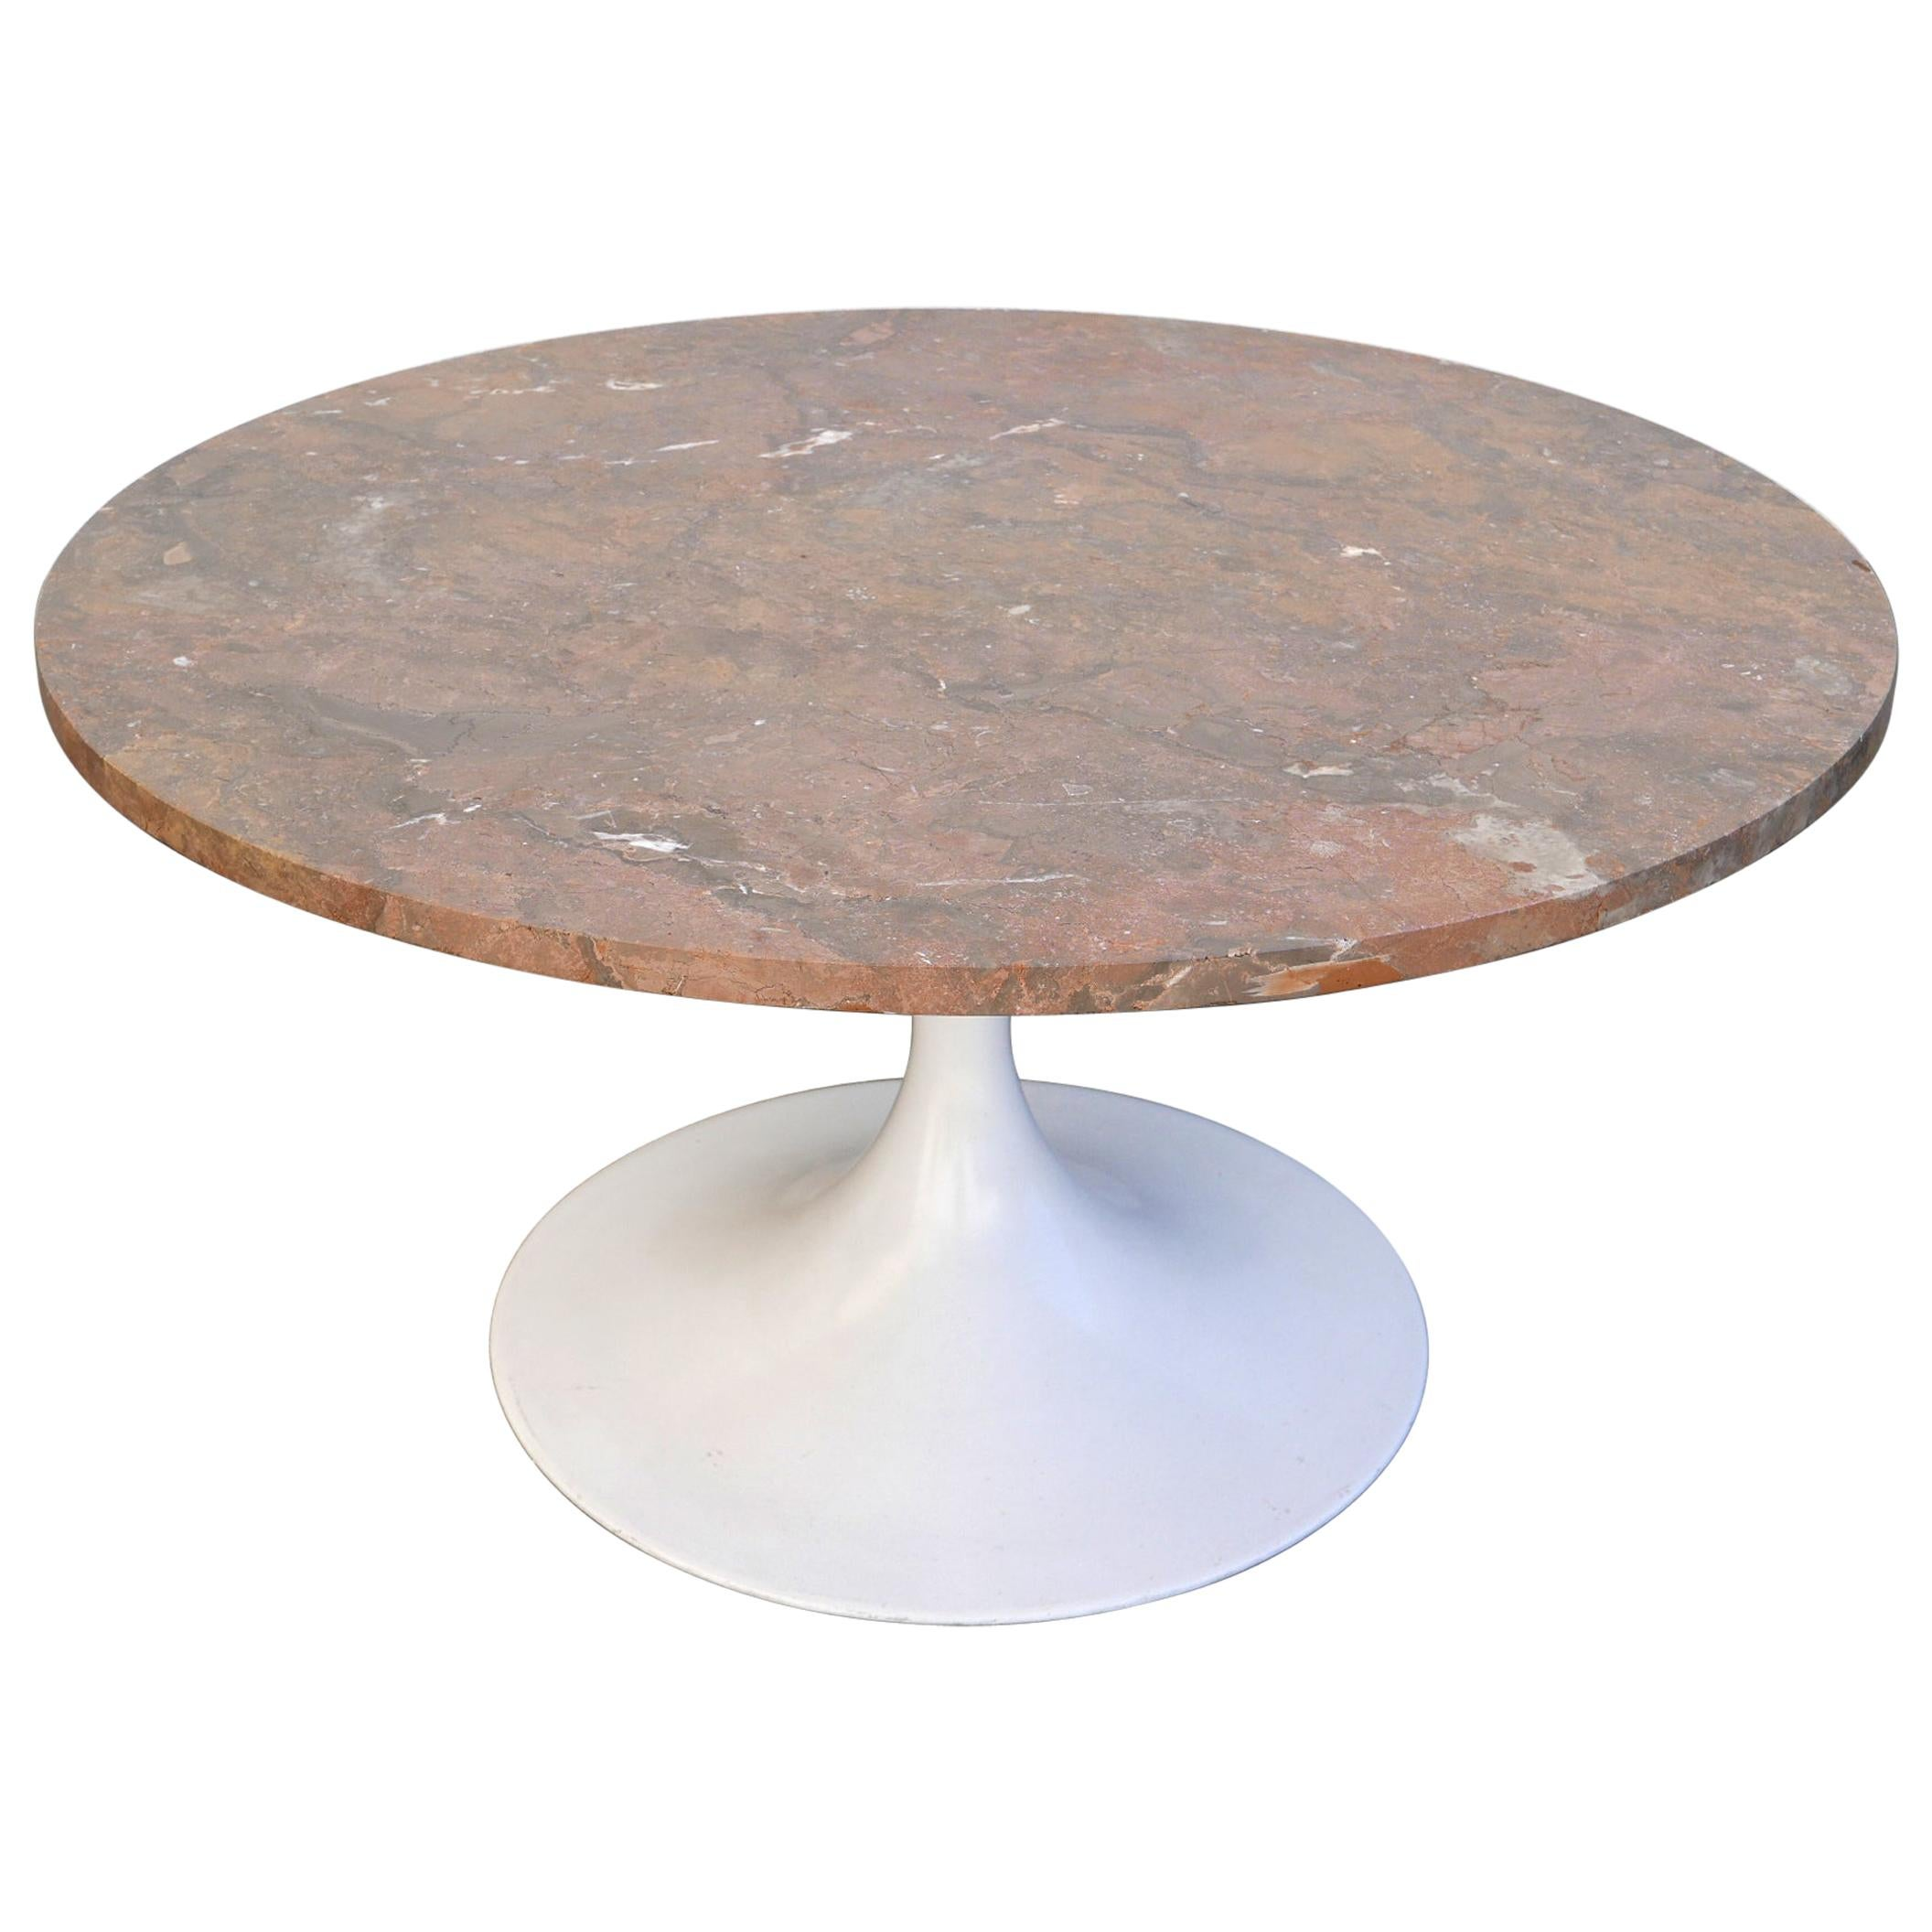 Rare Mid-Century Modern Tulip Base Marble Coffee Table by Honsel, Germany, 1960s